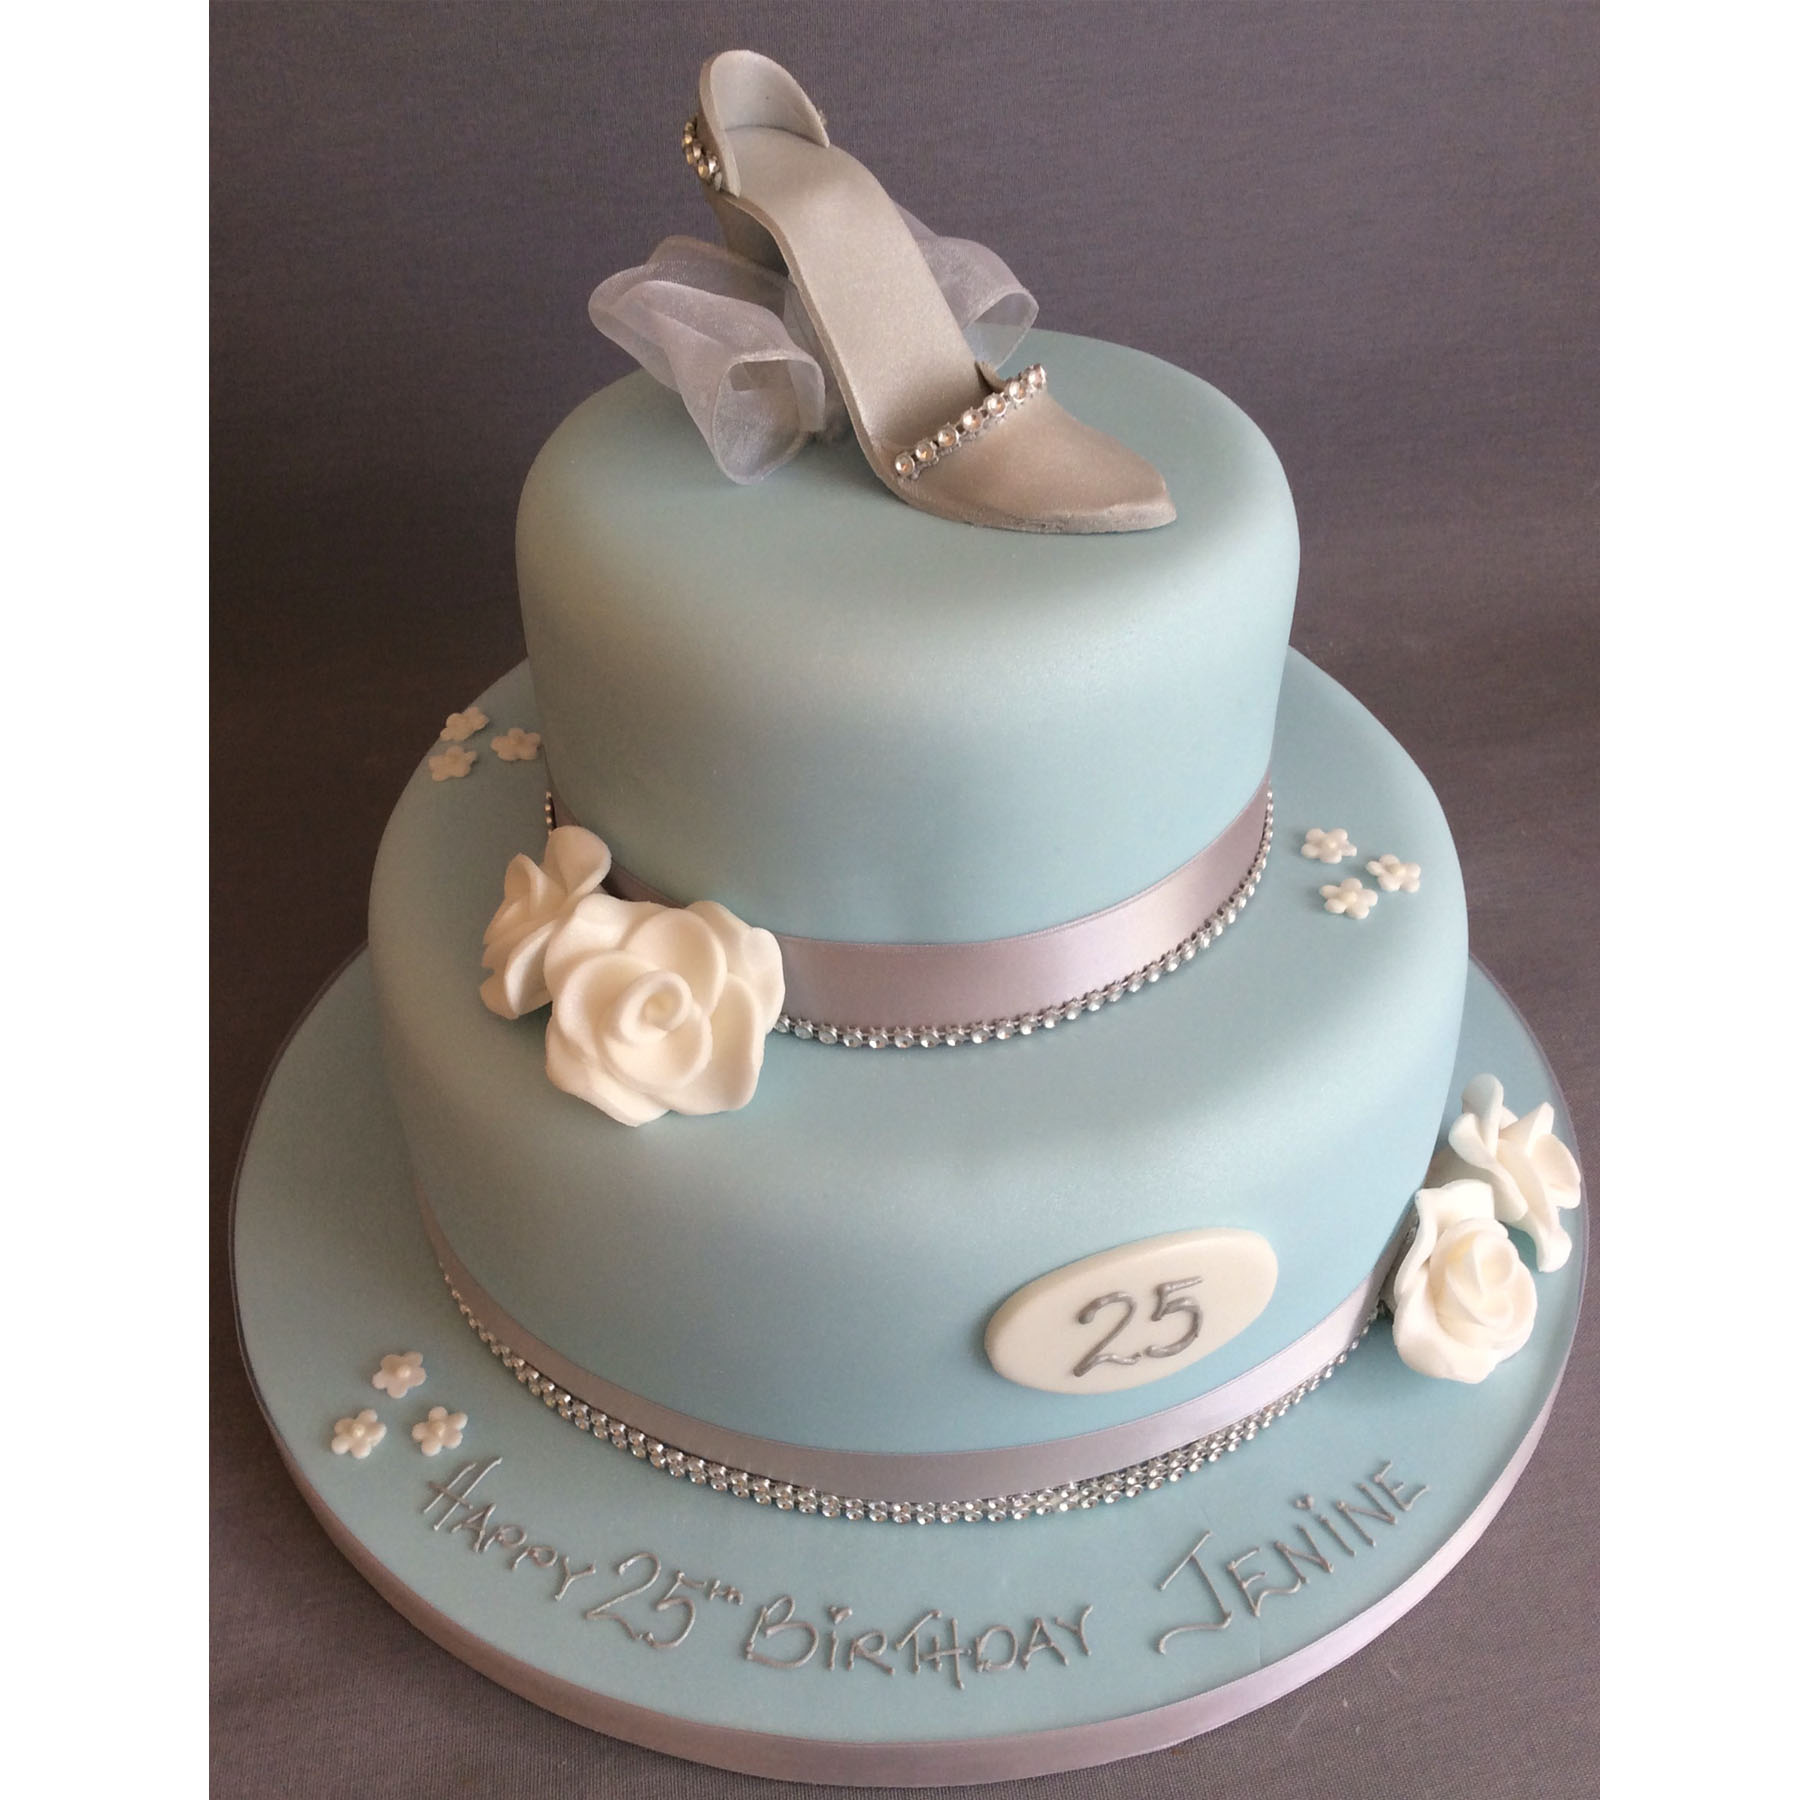 25th Birthday Cake Ideas The Is A Major Milestone For Young Adult